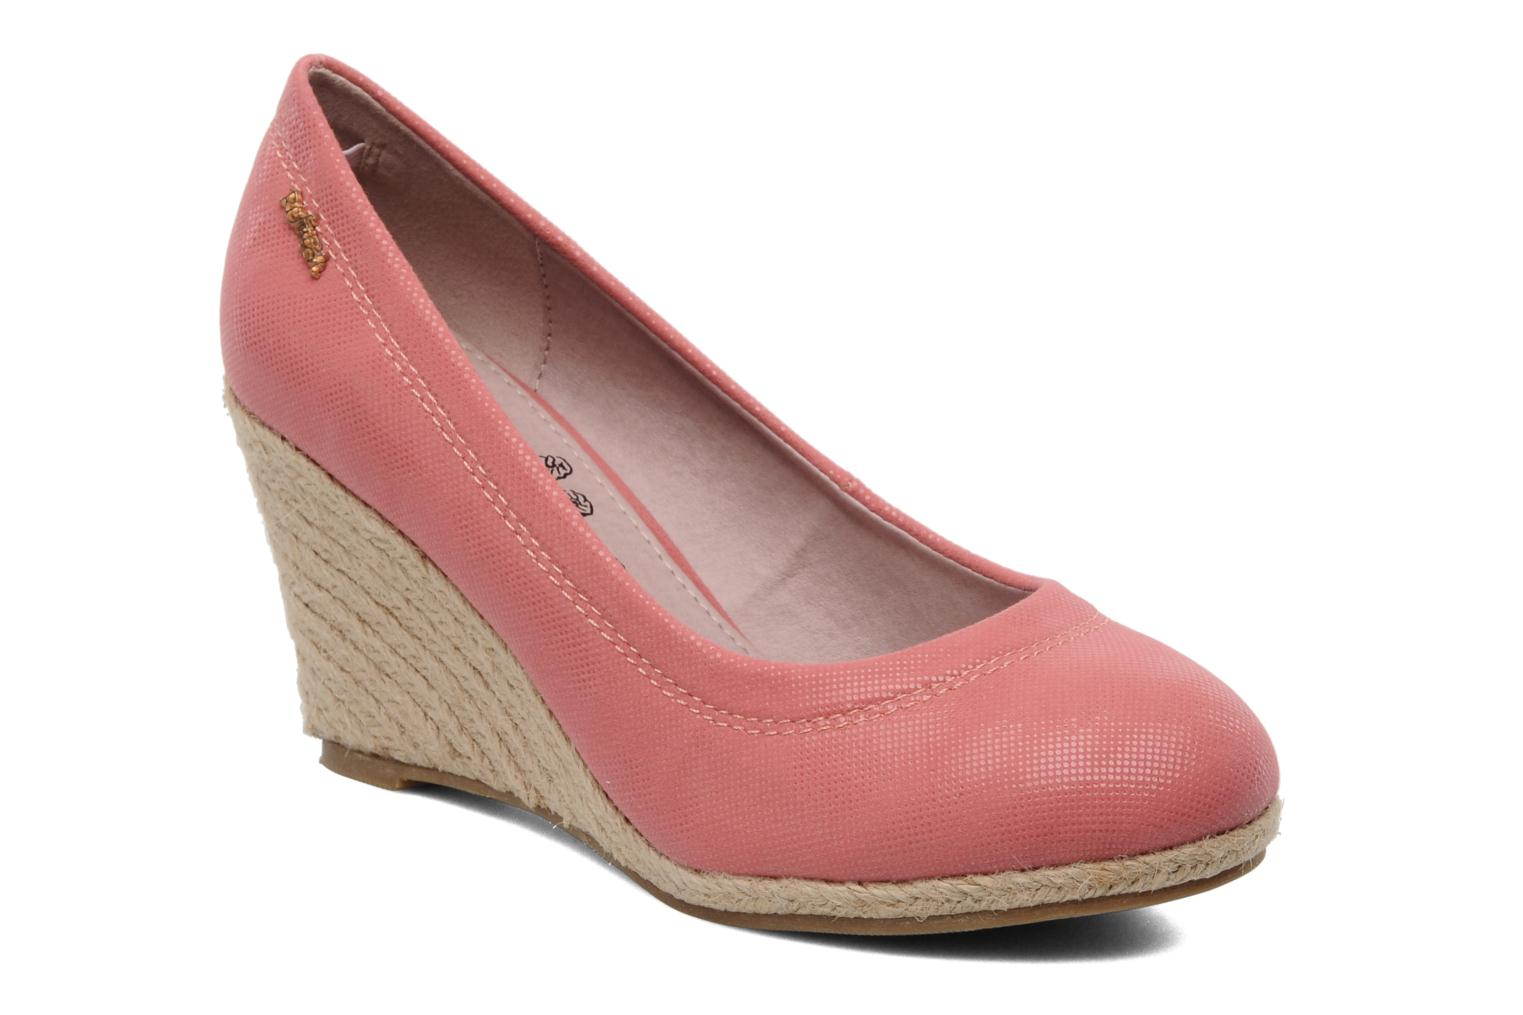 Zapatos Tacon Rosa Chicle